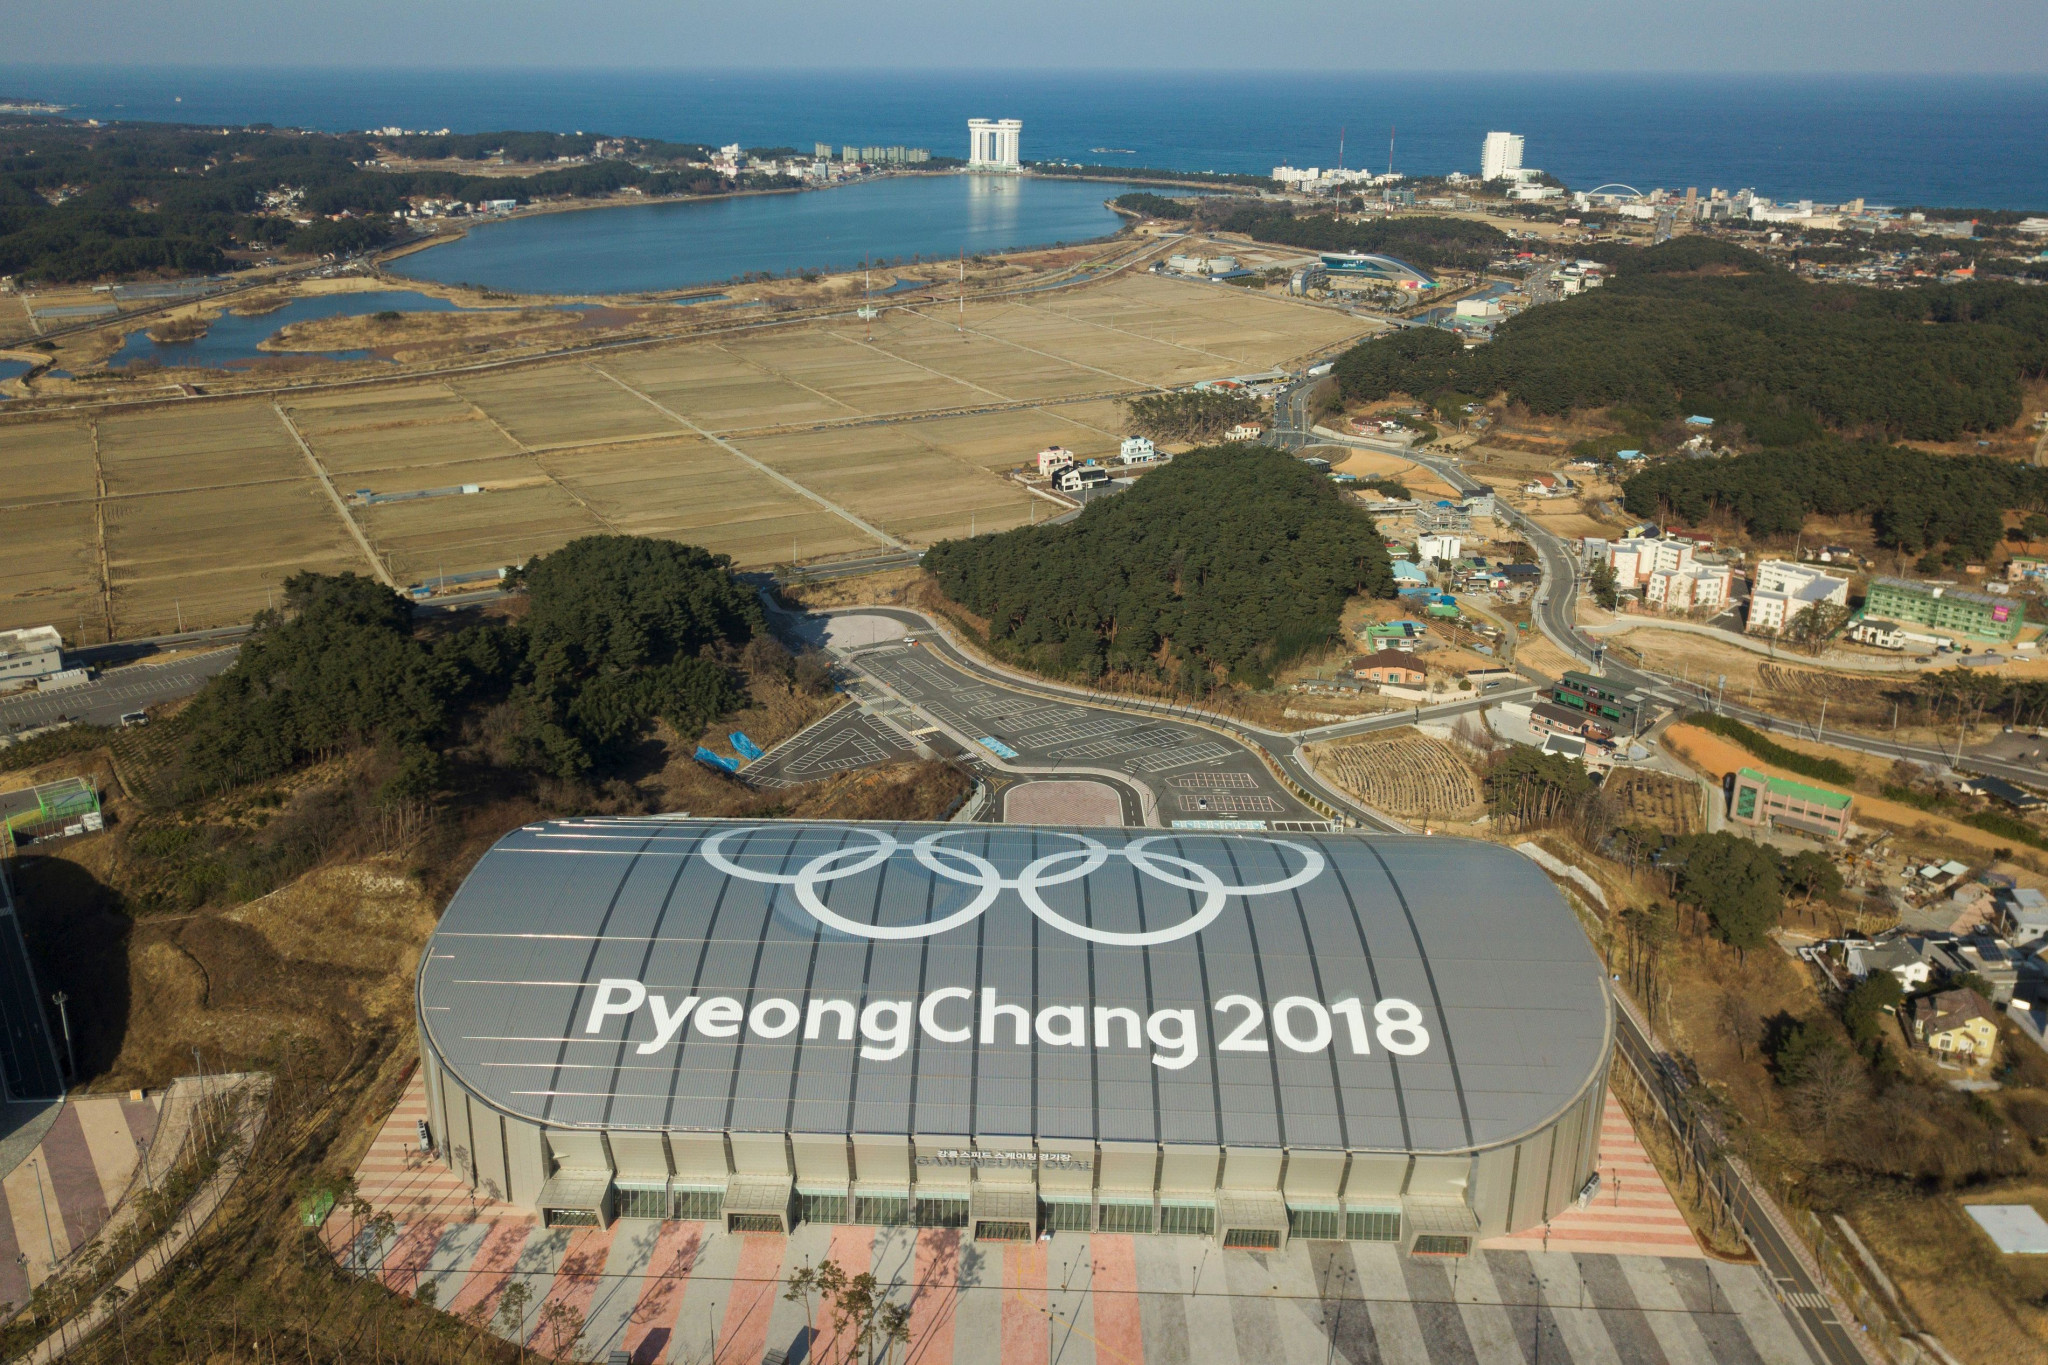 A long-term future for the facilities built for Pyeongchang 2018, including the Gangneung Oval, where the speed skating was held, has been promised by Thomas Bach, despite there currently being no legacy plan in place ©Getty Images